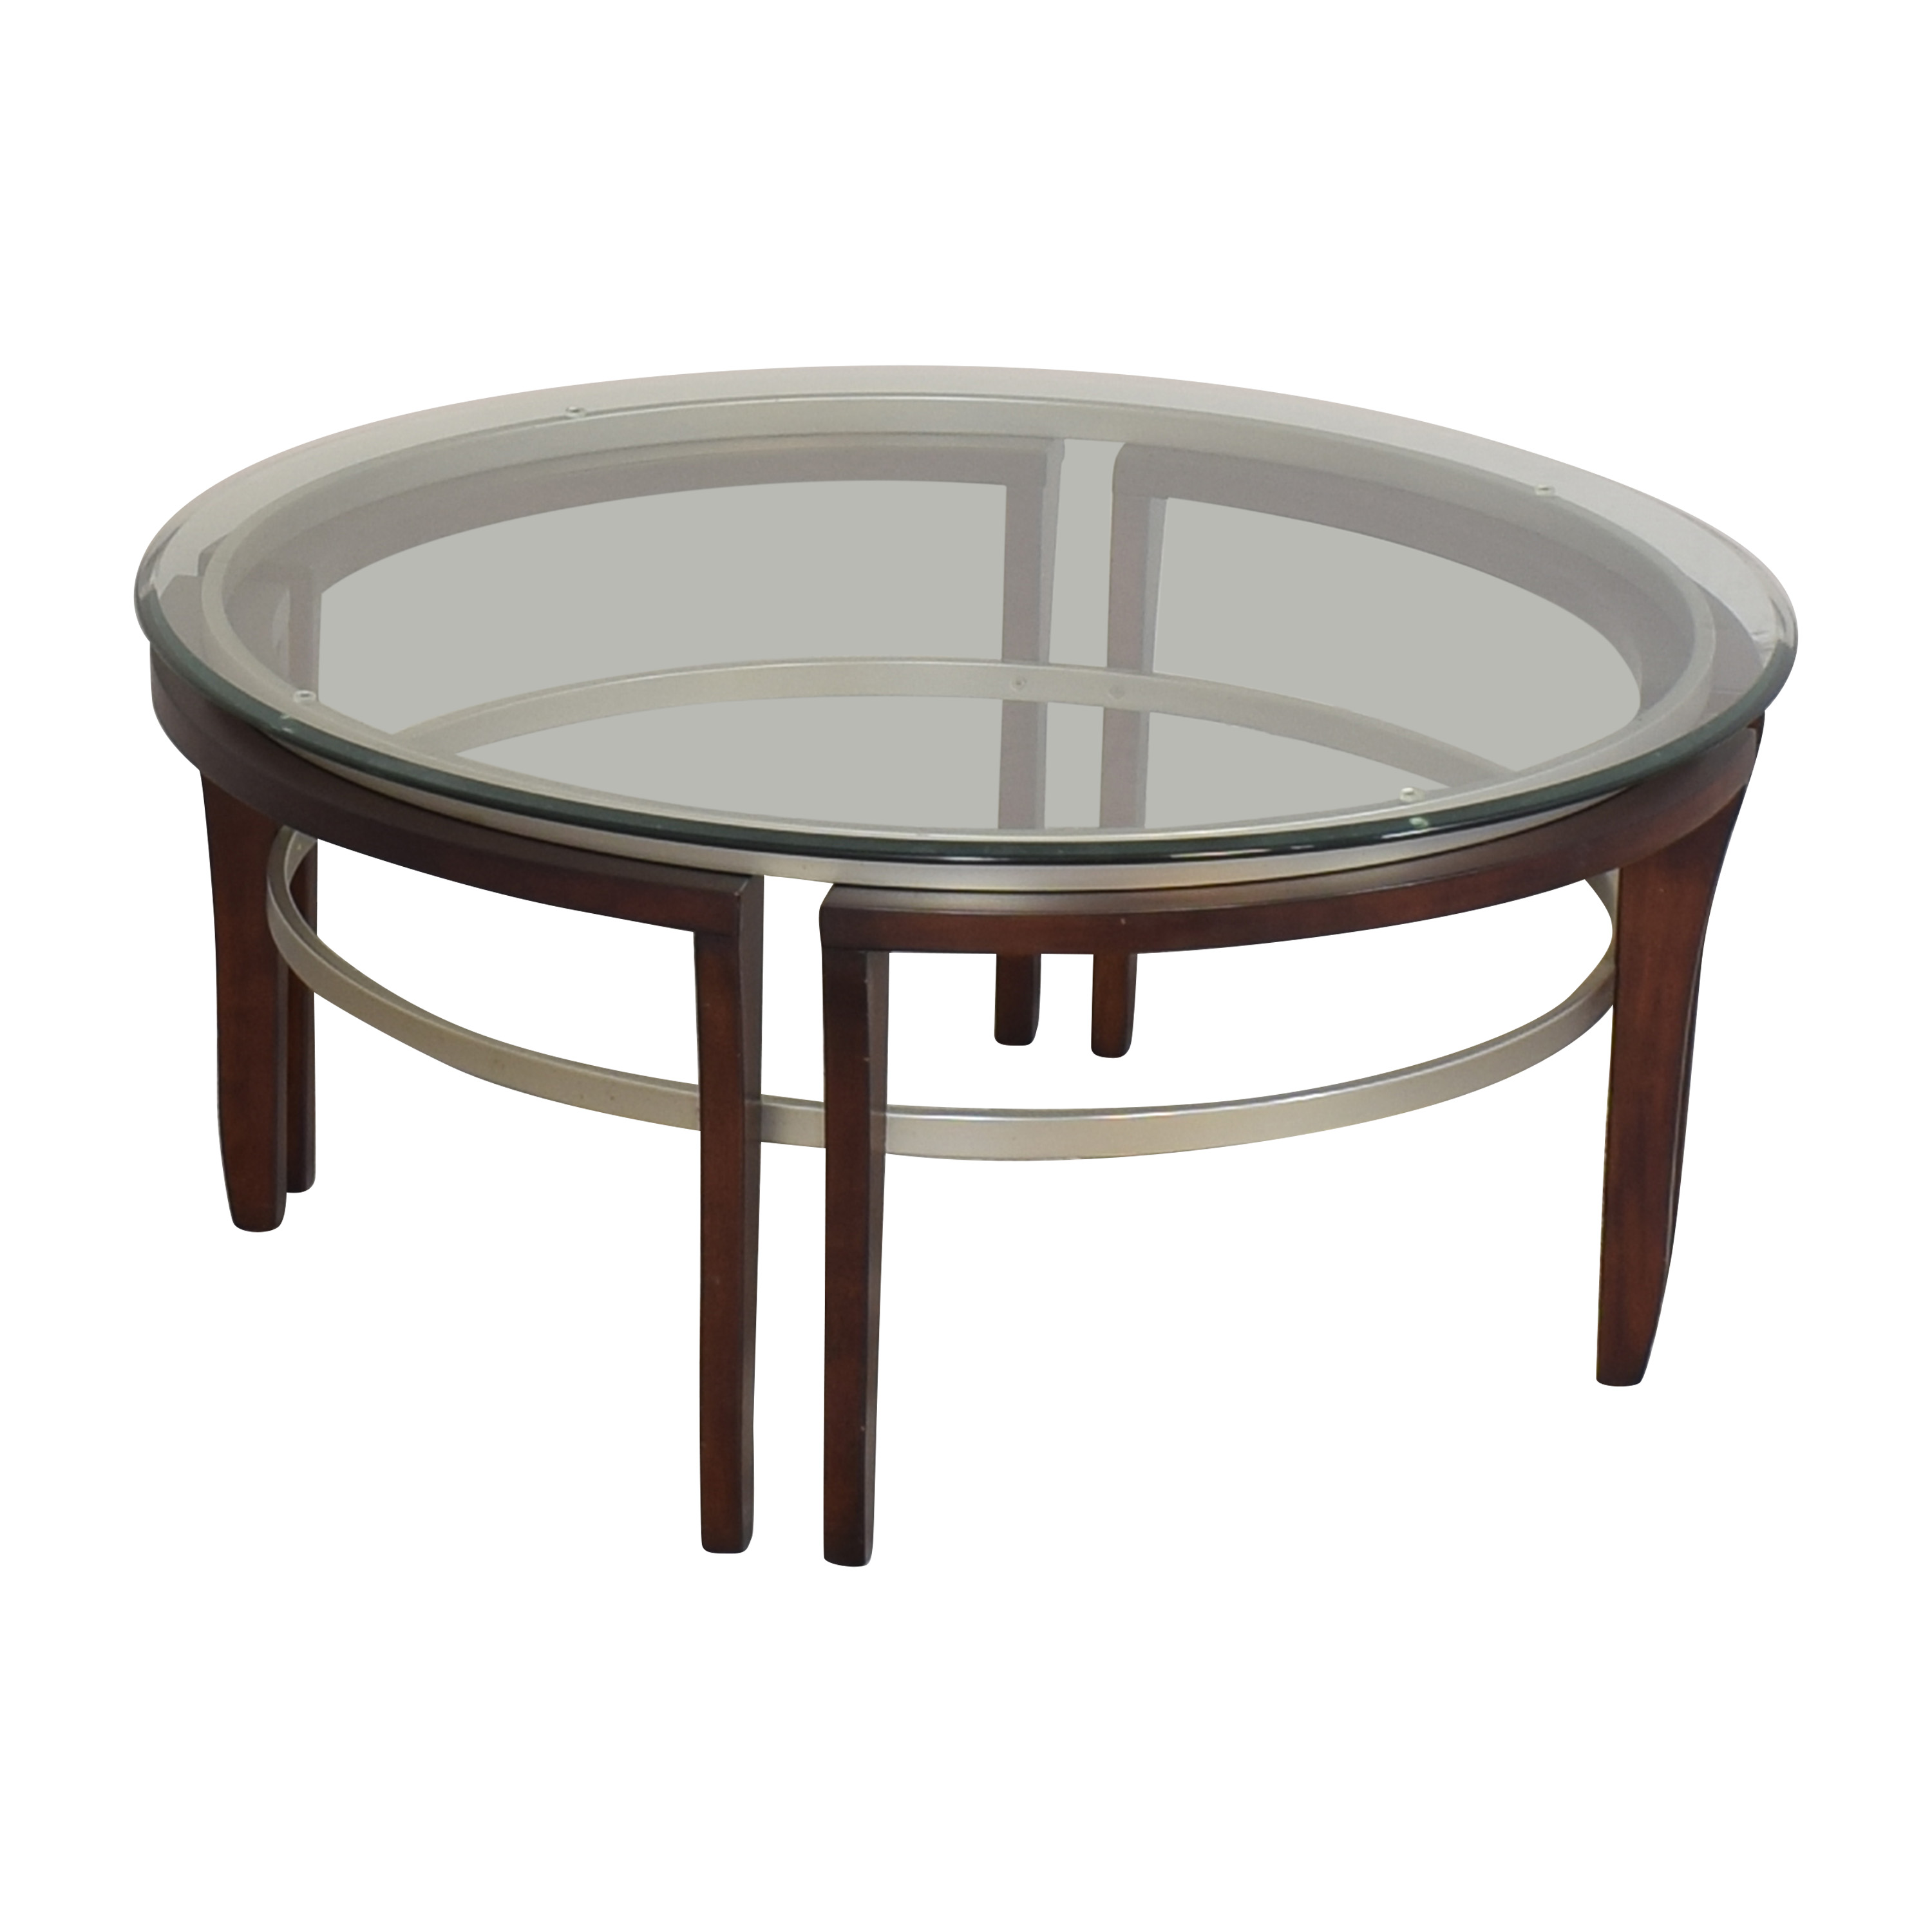 Macy's Macy's Fusion Round Coffee Table used